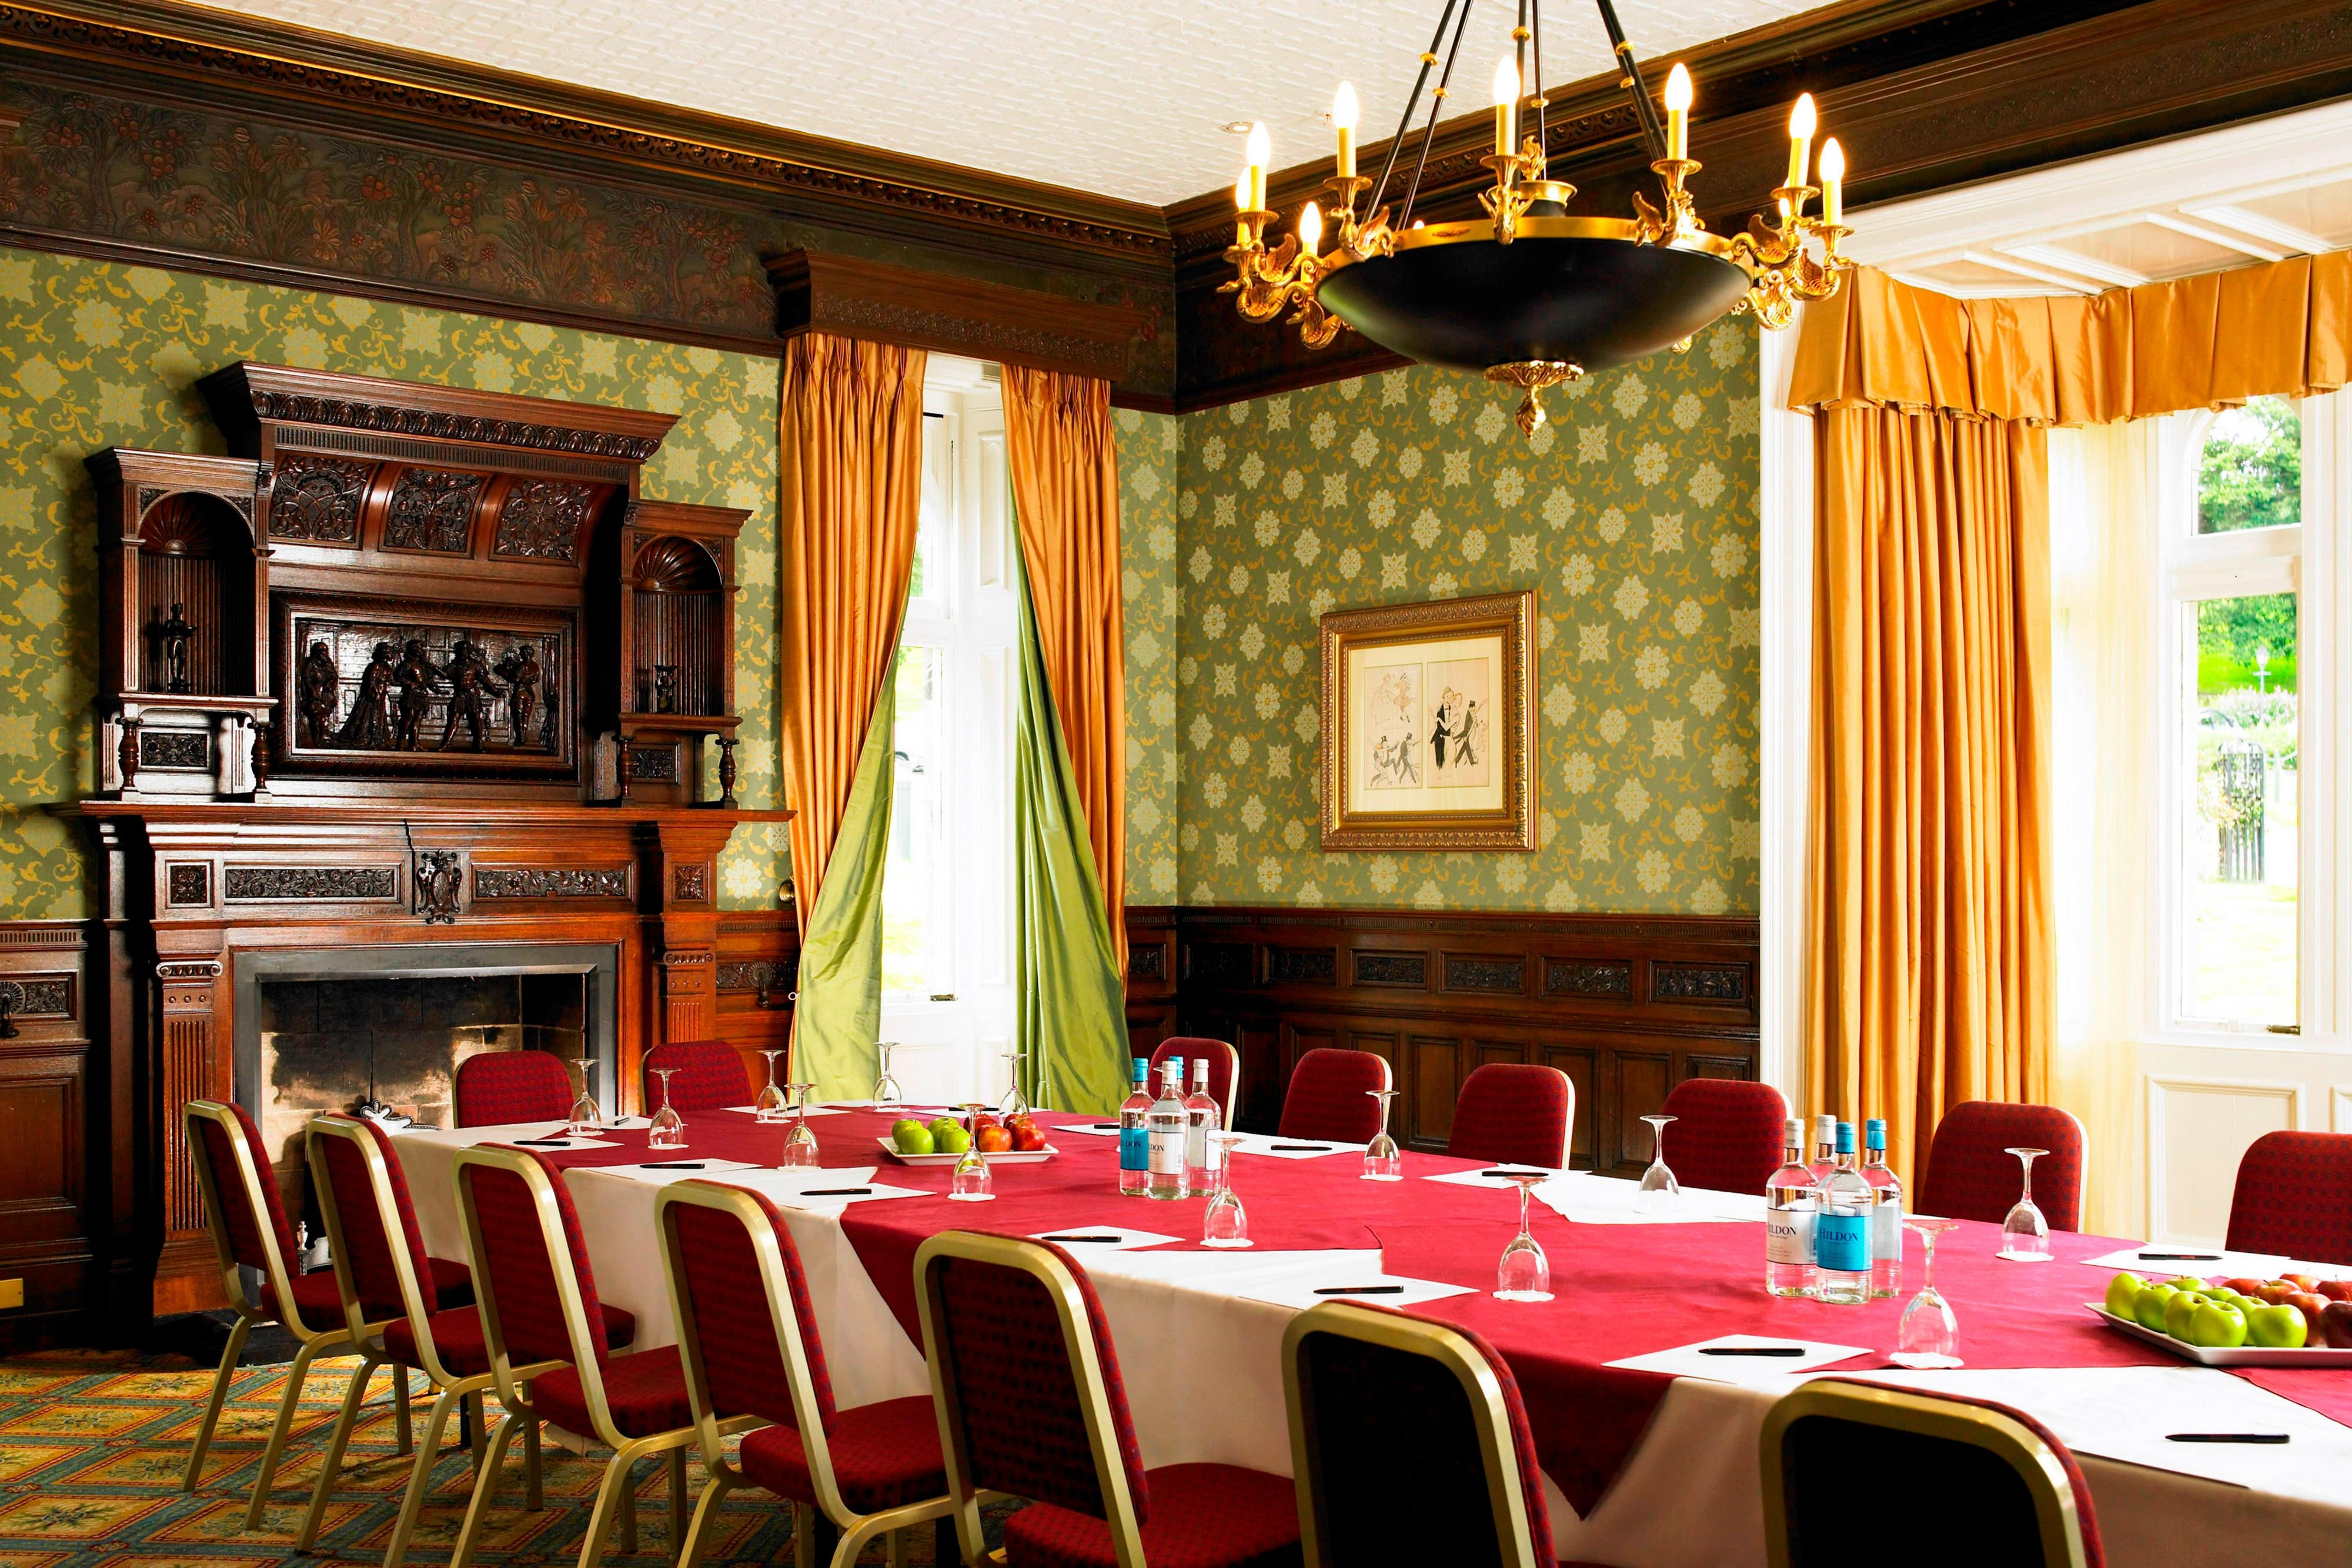 Boardroom at Breadsall Priory